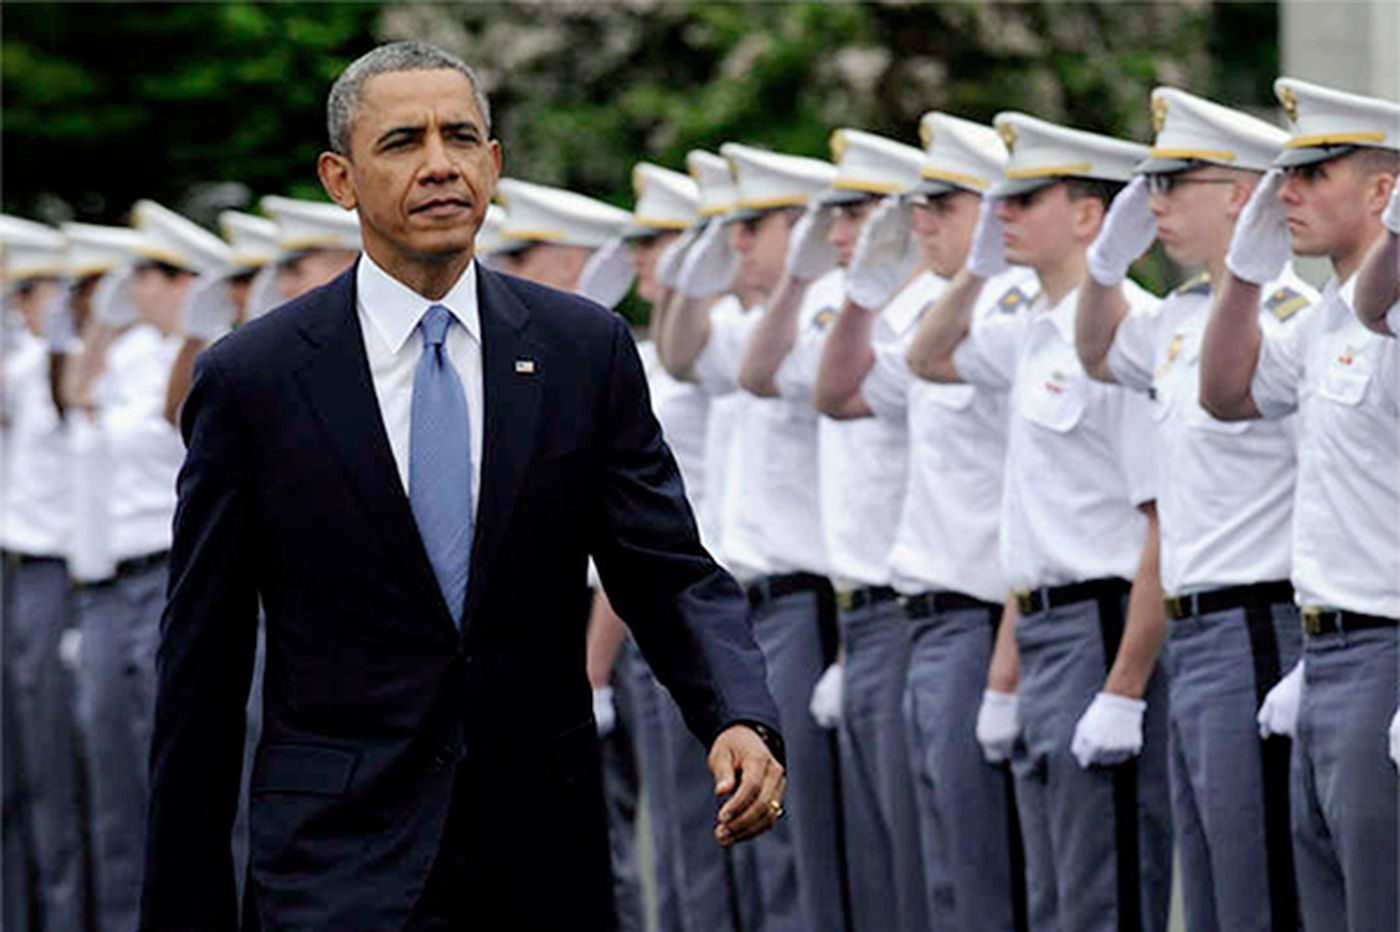 Worldview: An Obama disconnect on foreign policy